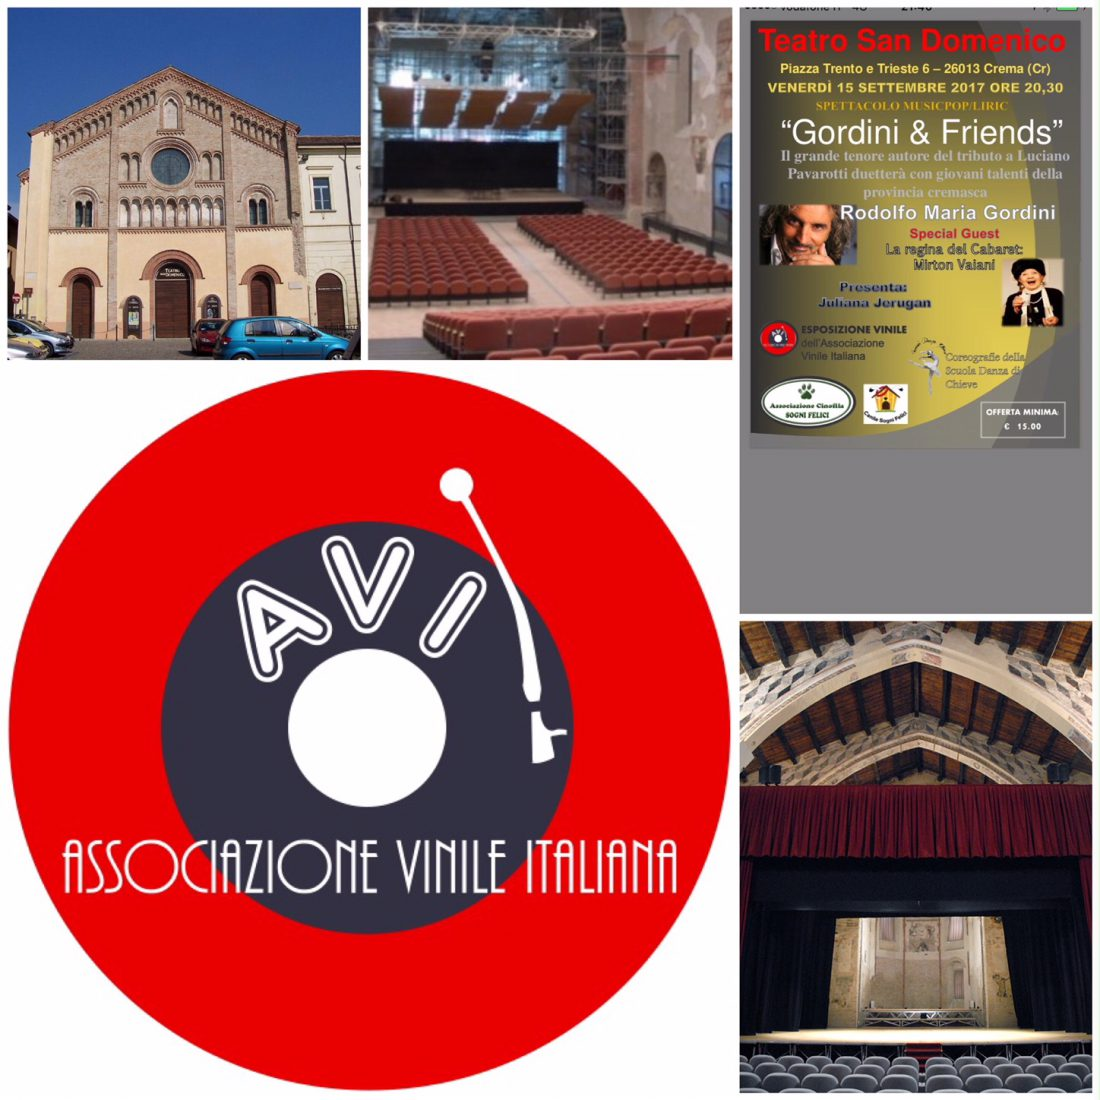 Gordini and friends al Teatro San Domenico - Associazione Vinile Italiana